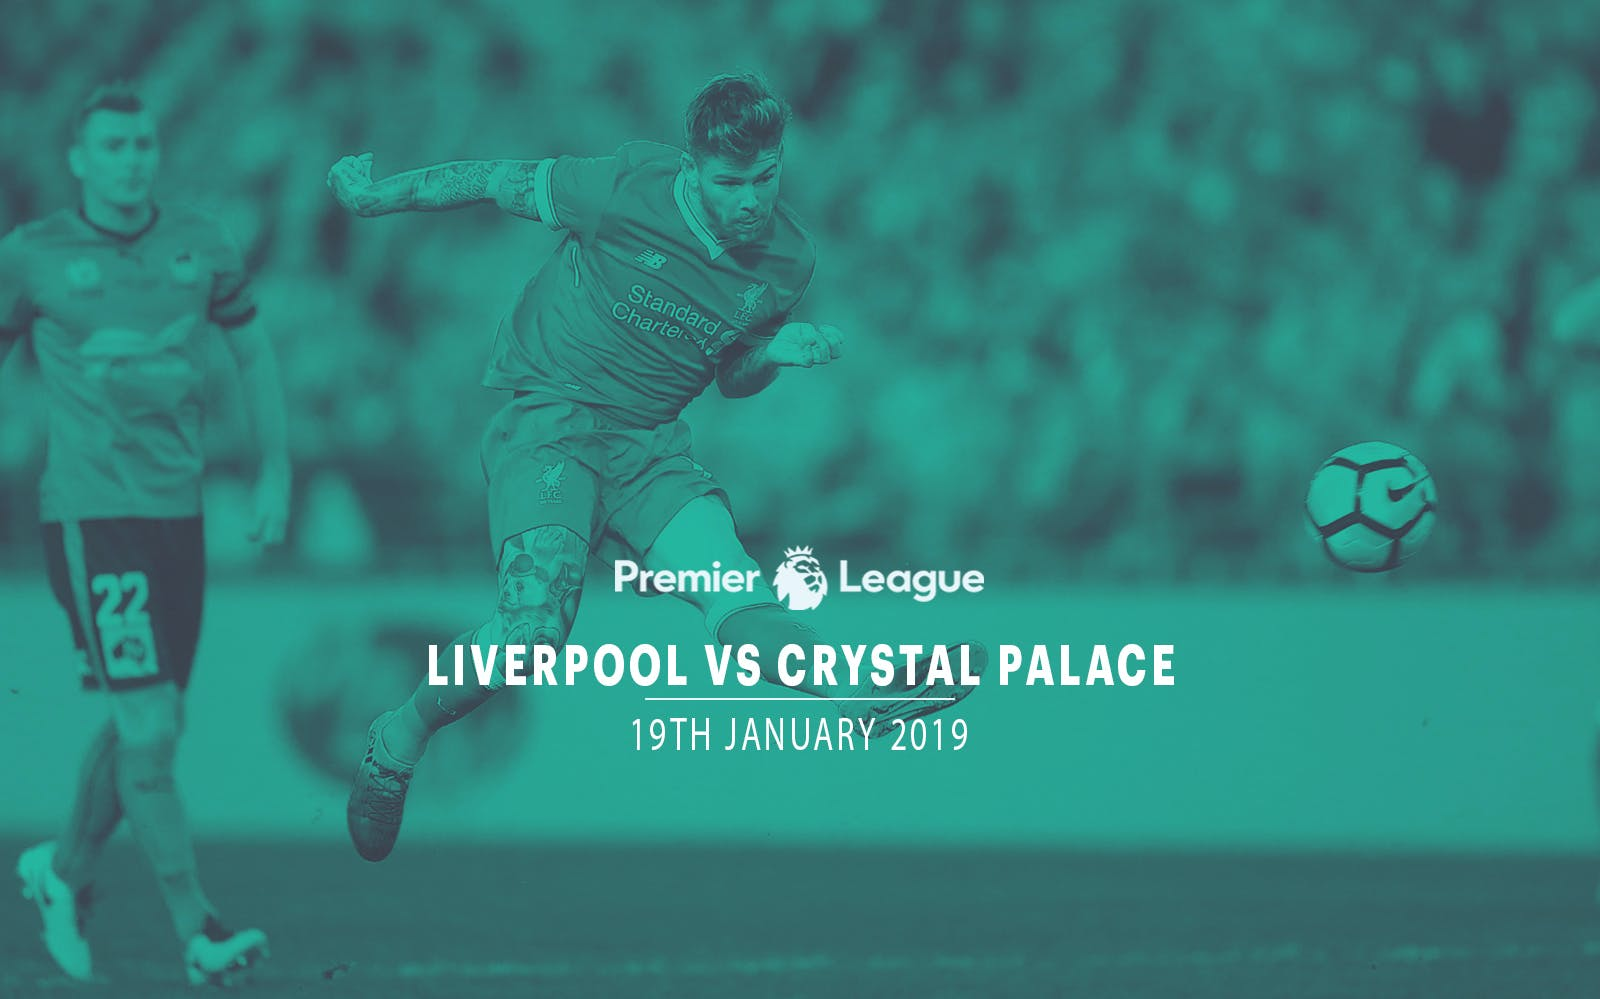 liverpool vs crystal palace - 19th jan '19-1